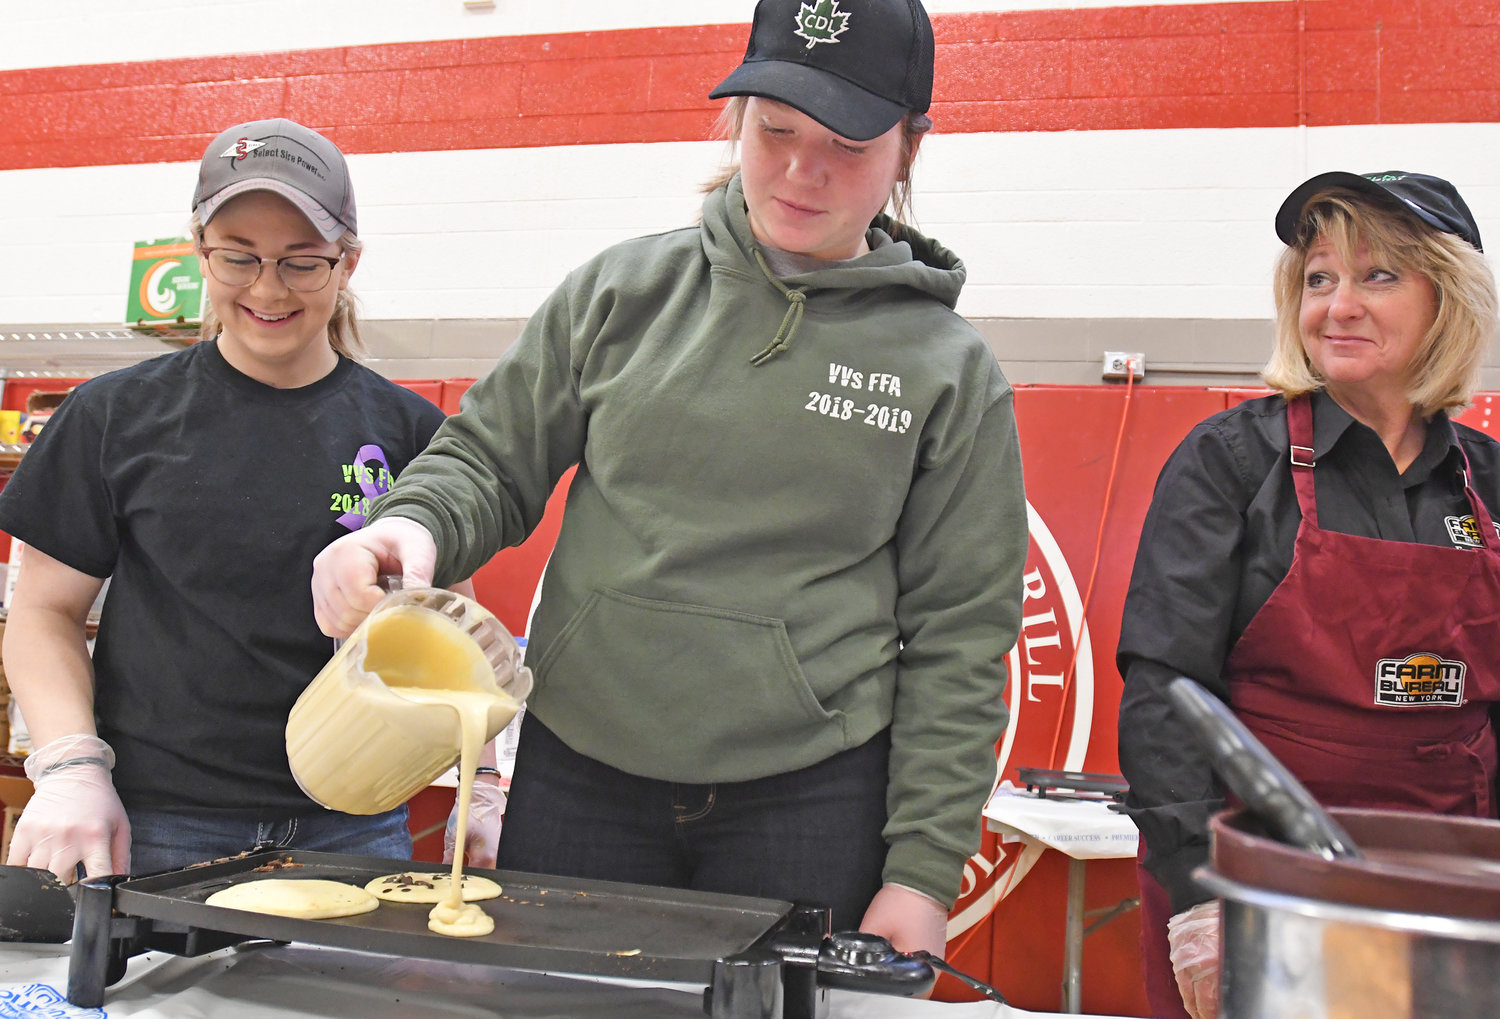 BATTER UP — Gabby Adams, left, president of VVS FFA, and Karen K. Lohr, right, watch as Danann Lohr, vice president of VVS FFA, pours the pancake batter on the griddle this morning at the VVS FFA pancake breakfast Saturday morning.